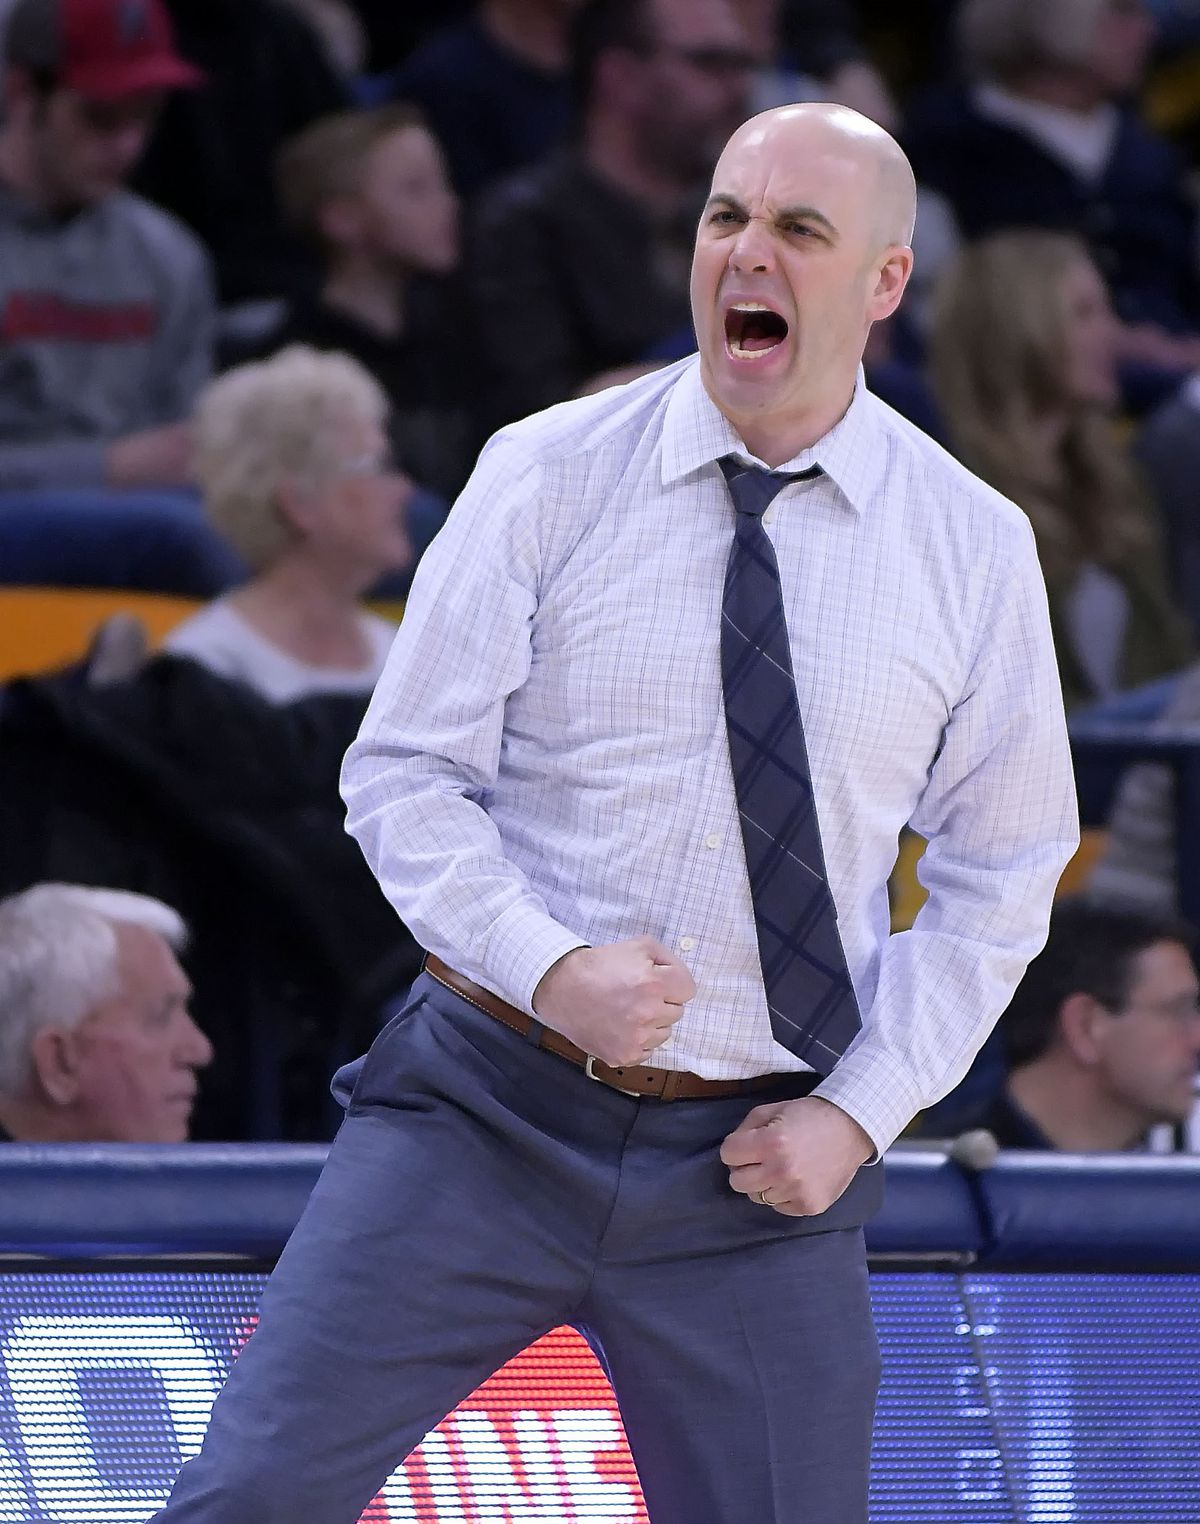 Utah State coach Craig Smith celebrates after a score against UNLV during an NCAA college basketball game Saturday, Feb. 2, 2019, in Logan, Utah. (Eli Lucero/The Herald Journal via AP)